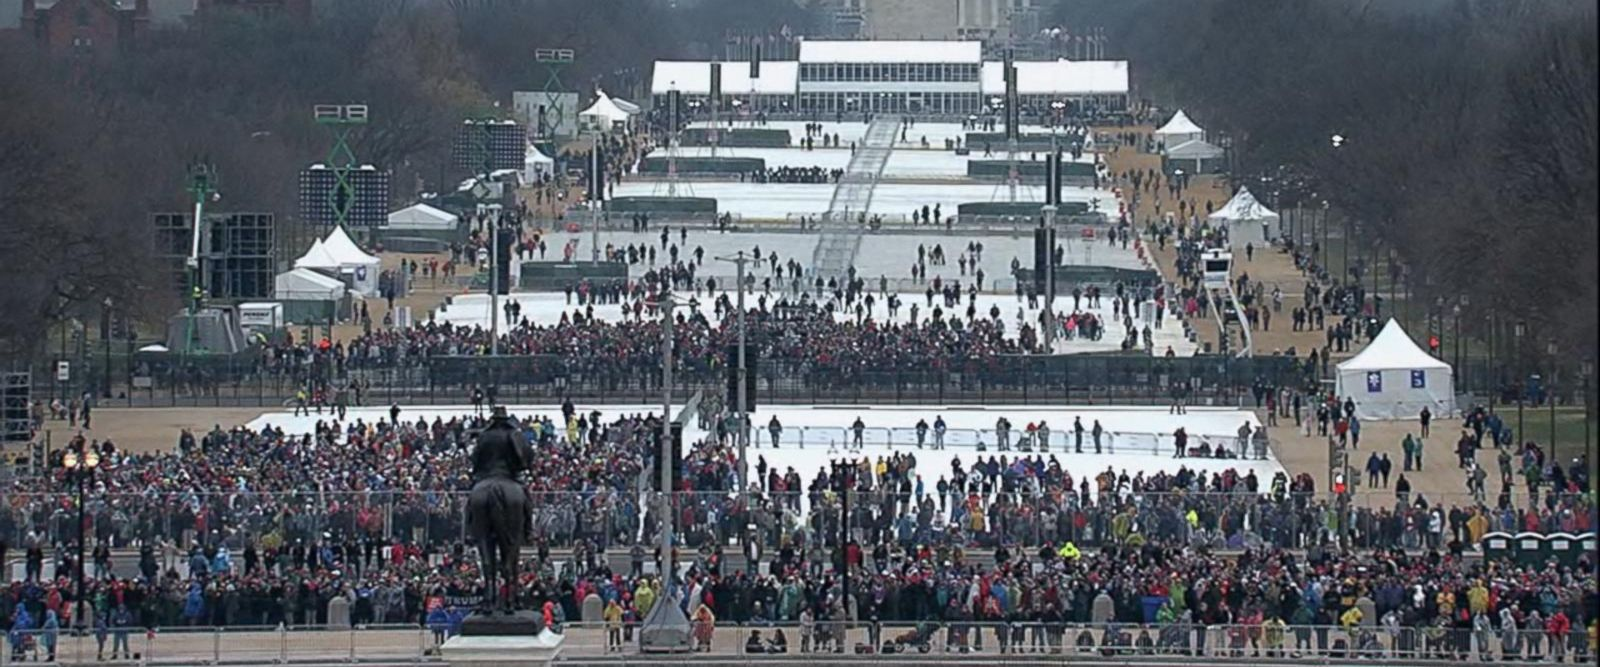 VIDEO: Thousands Gather in DC for 45th Presidential Inauguration